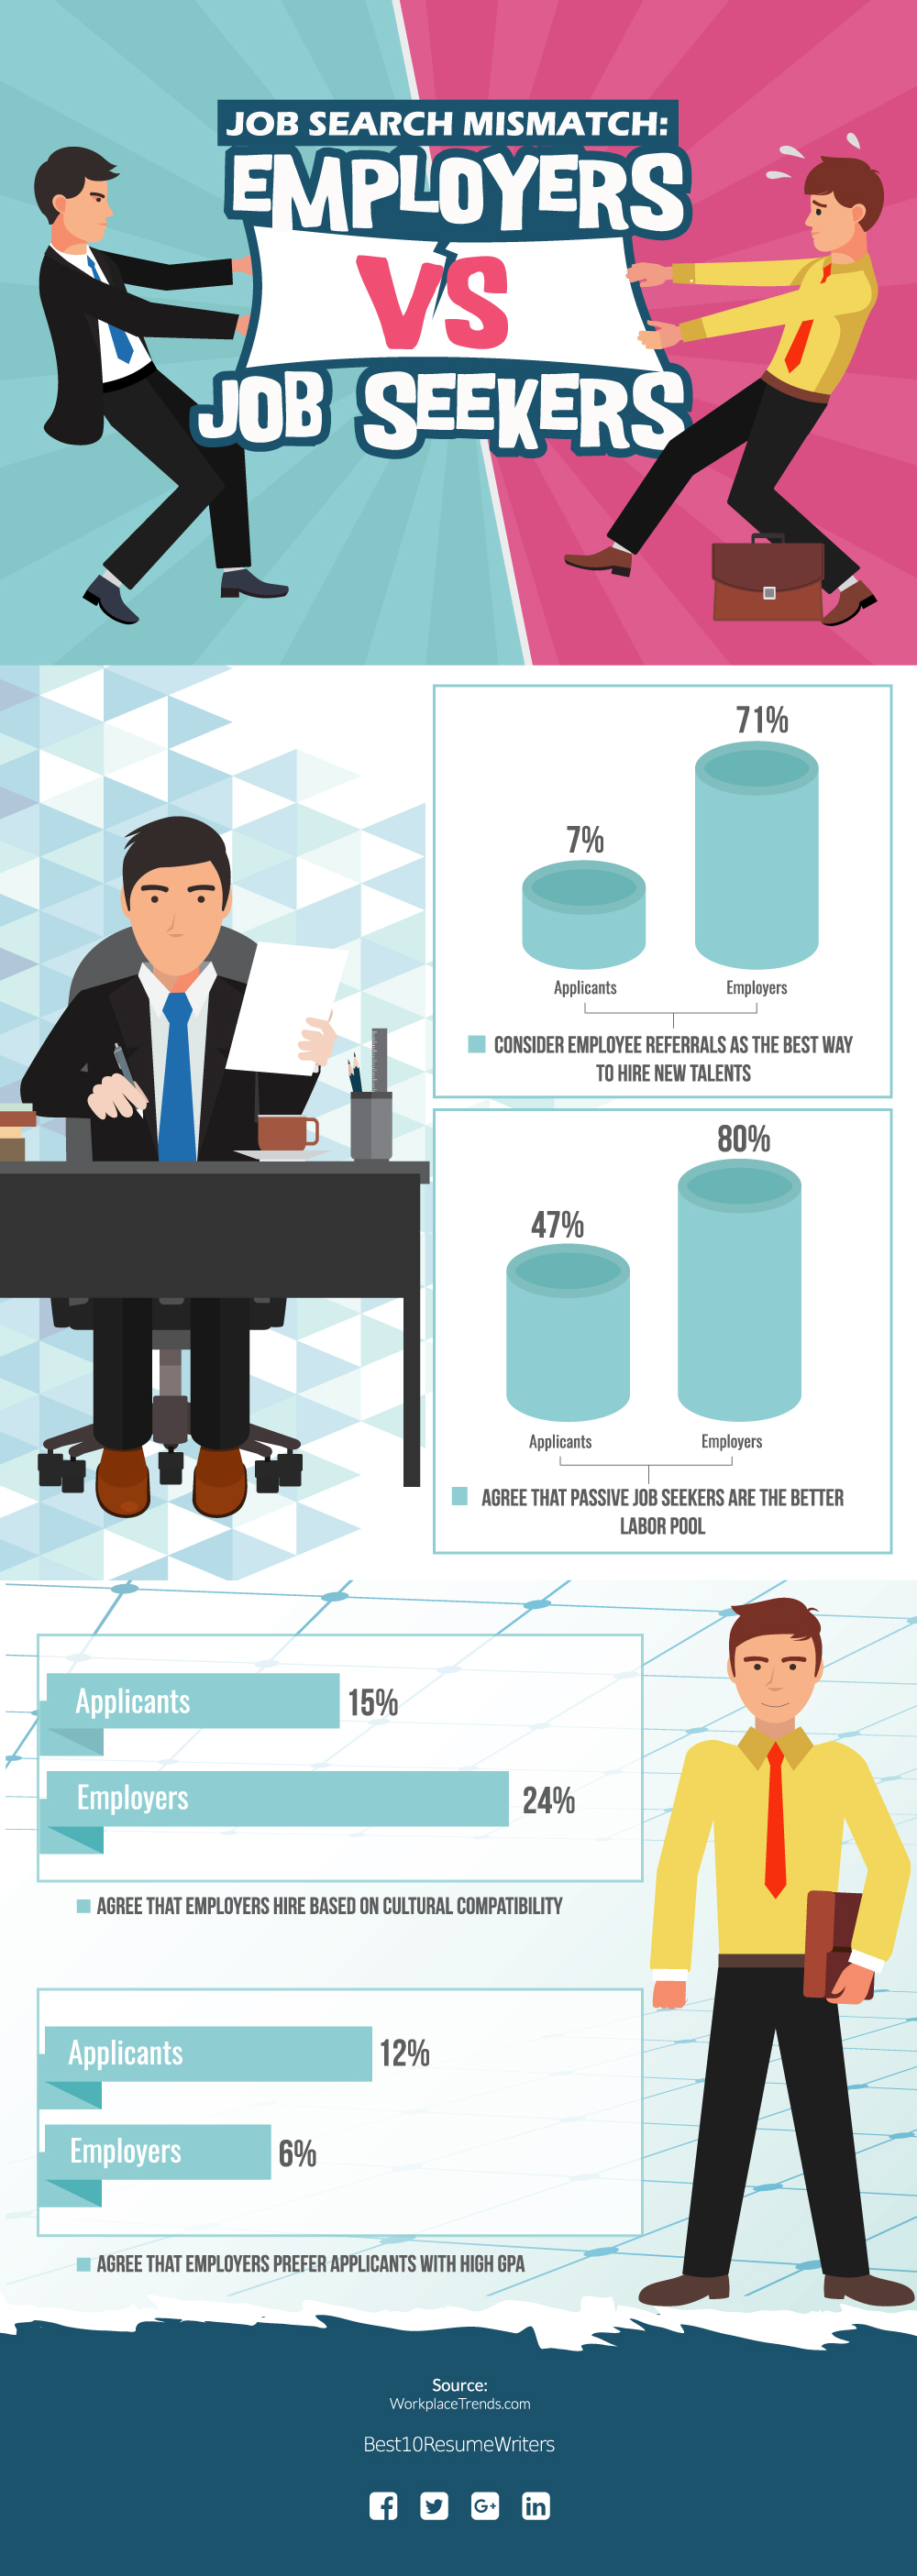 Job Search Mismatch - Employers vs Job Seekers - B10R - Infographic